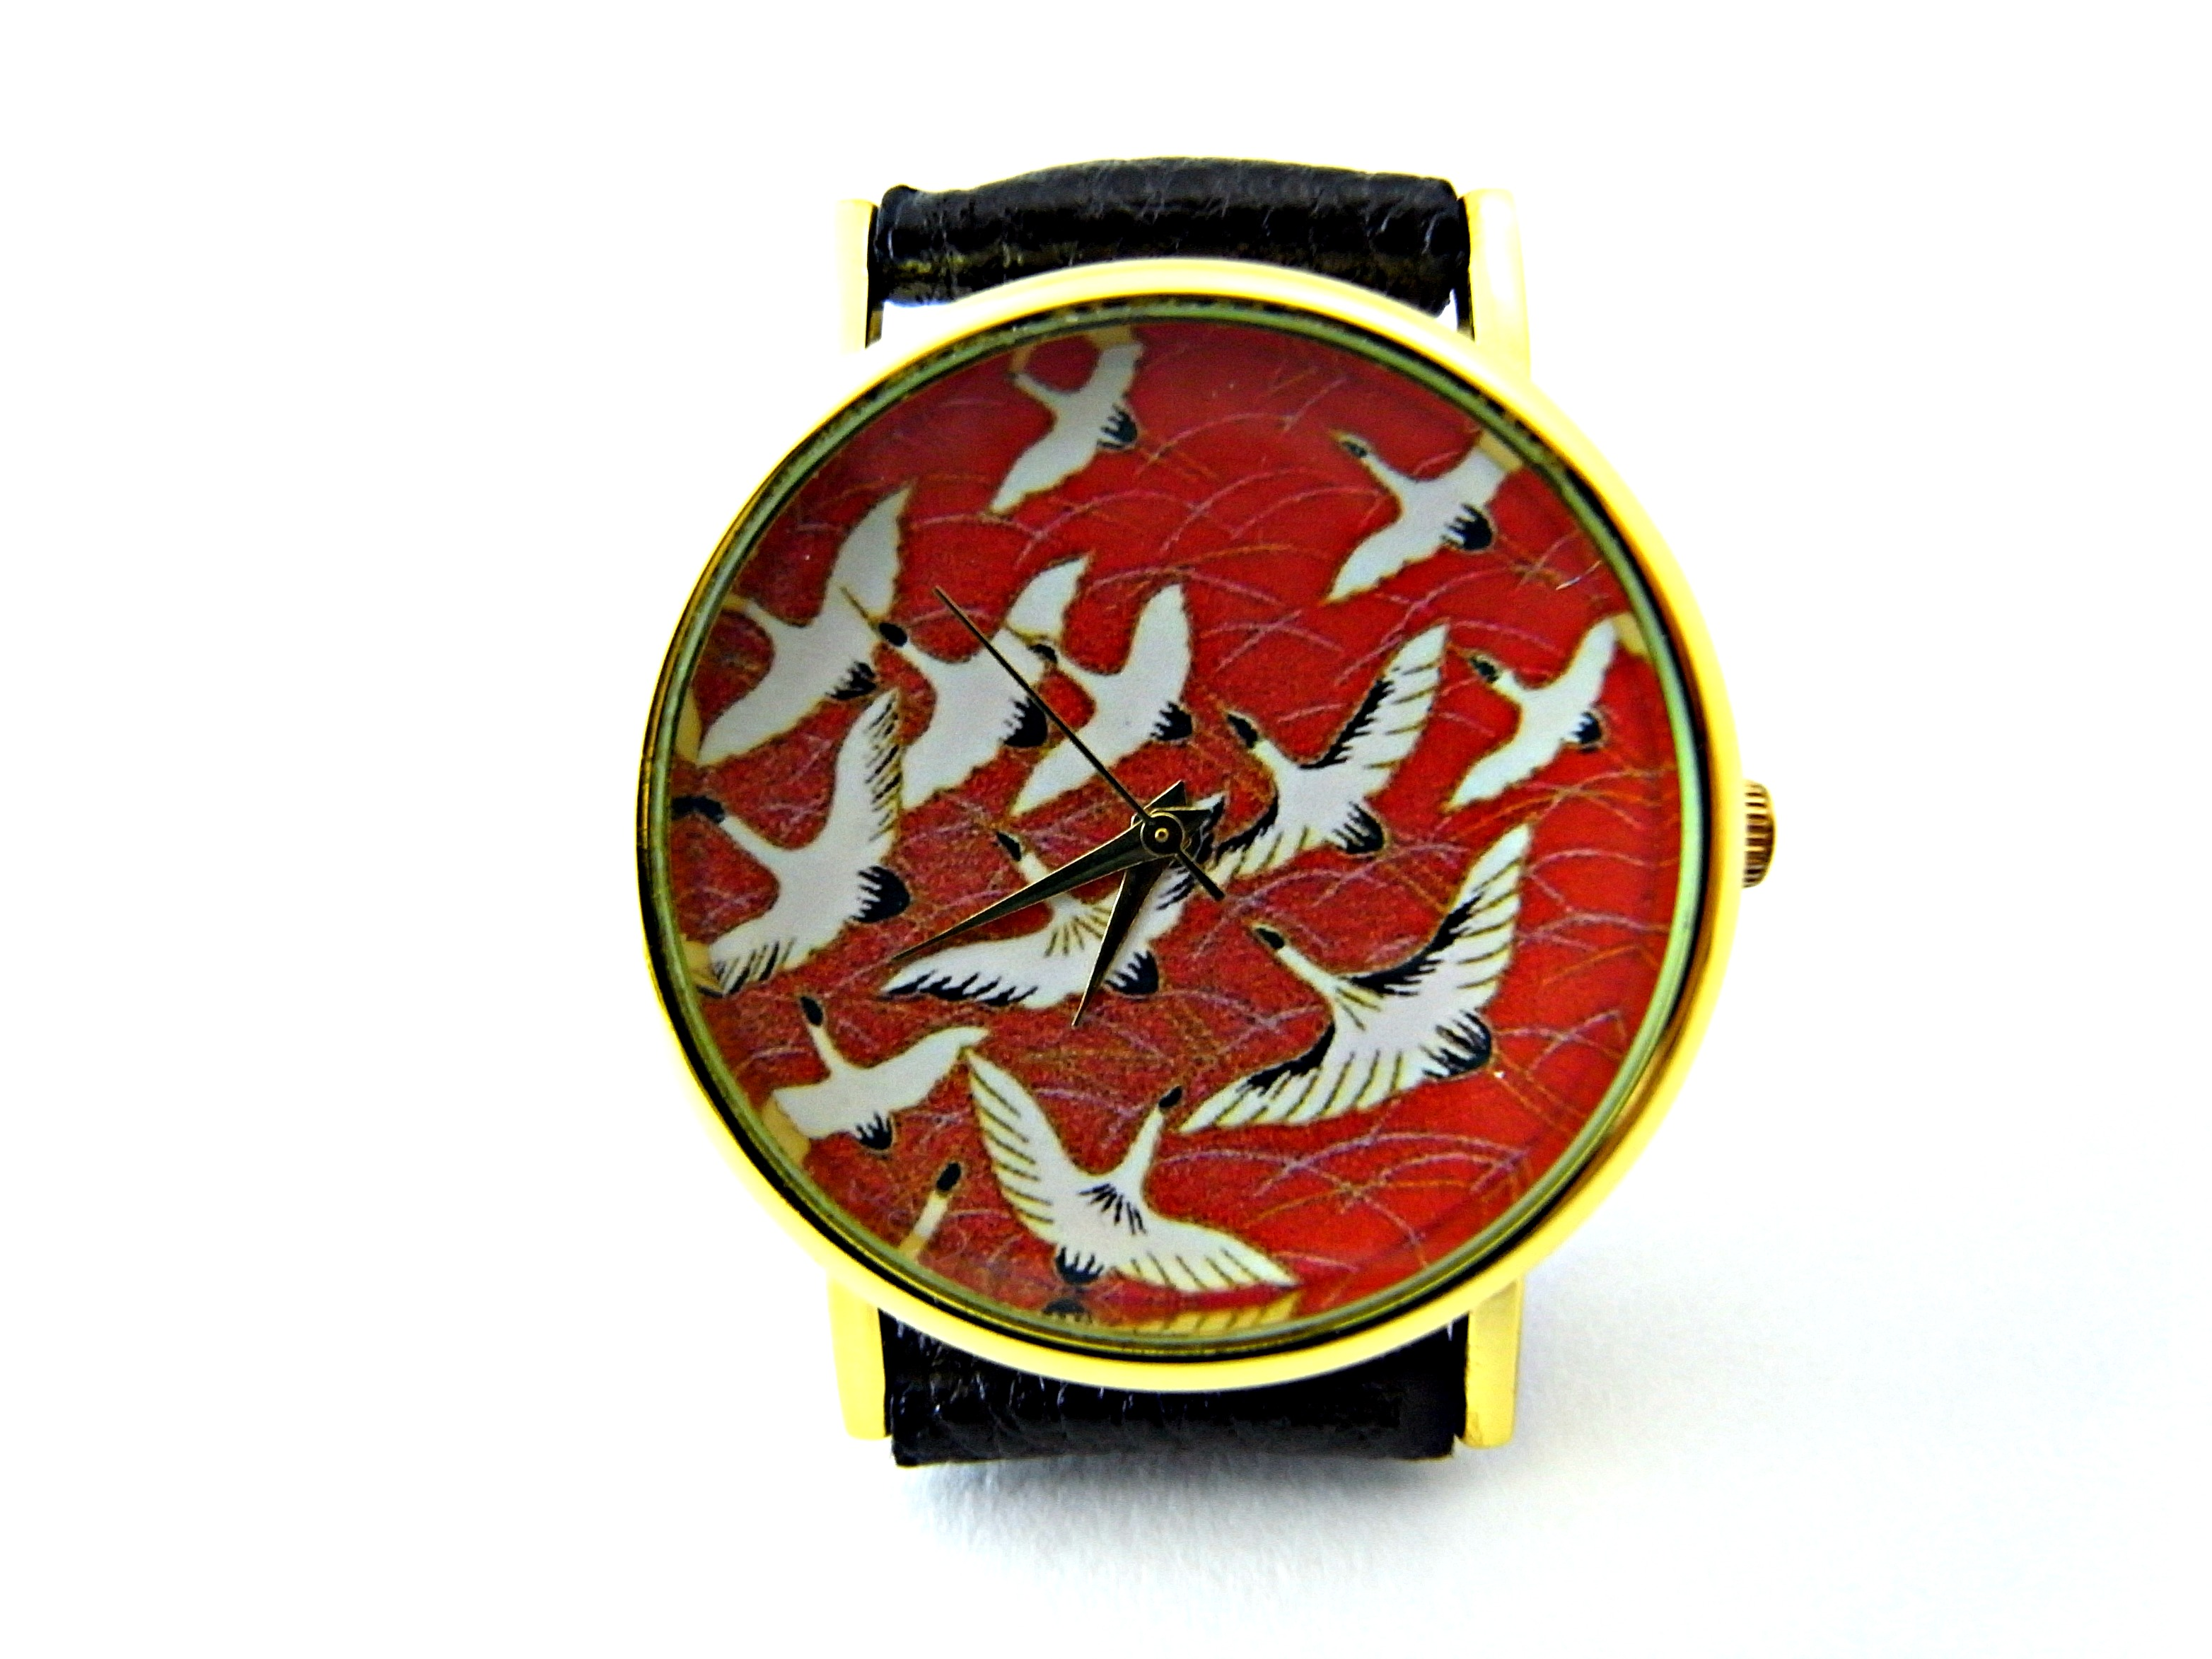 gallery normal stainless watches accessories lyst watch pvd strap product goldtone leather rose red steel runwell shinola